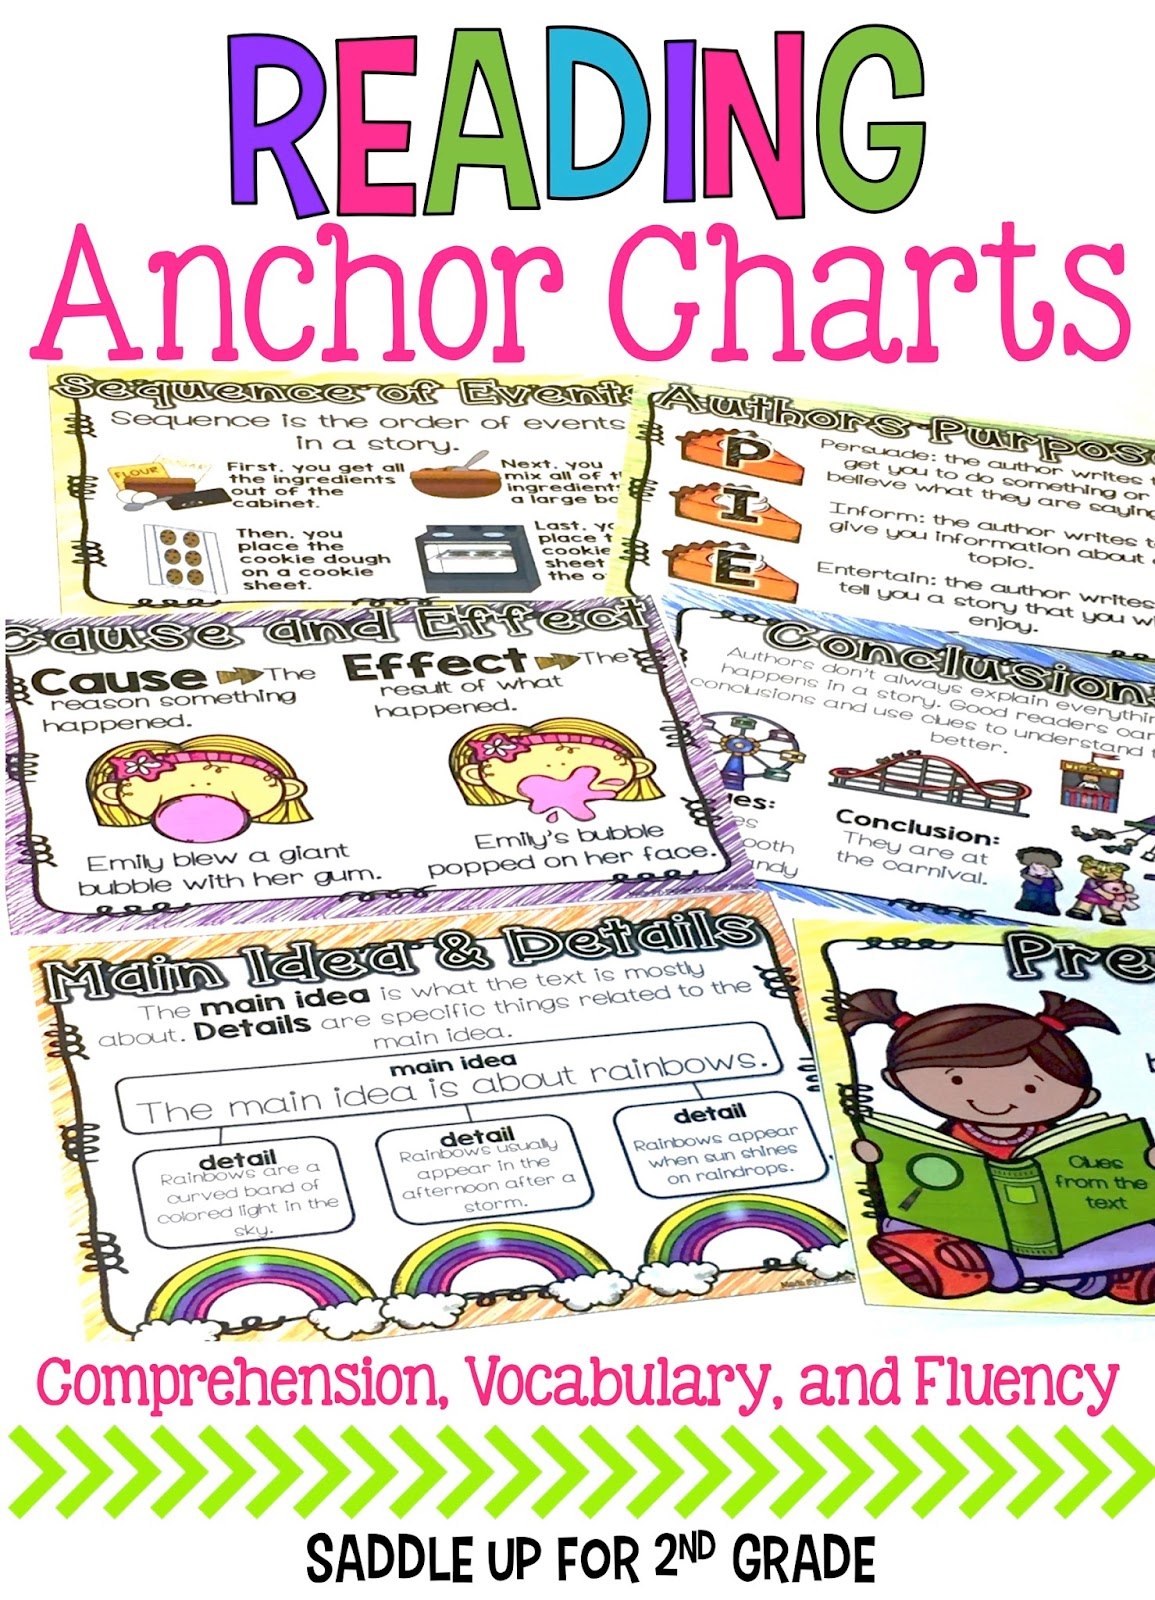 image relating to Reading Fluency Chart Printable named Examining Anchor Charts - Saddle Up for 2nd Quality